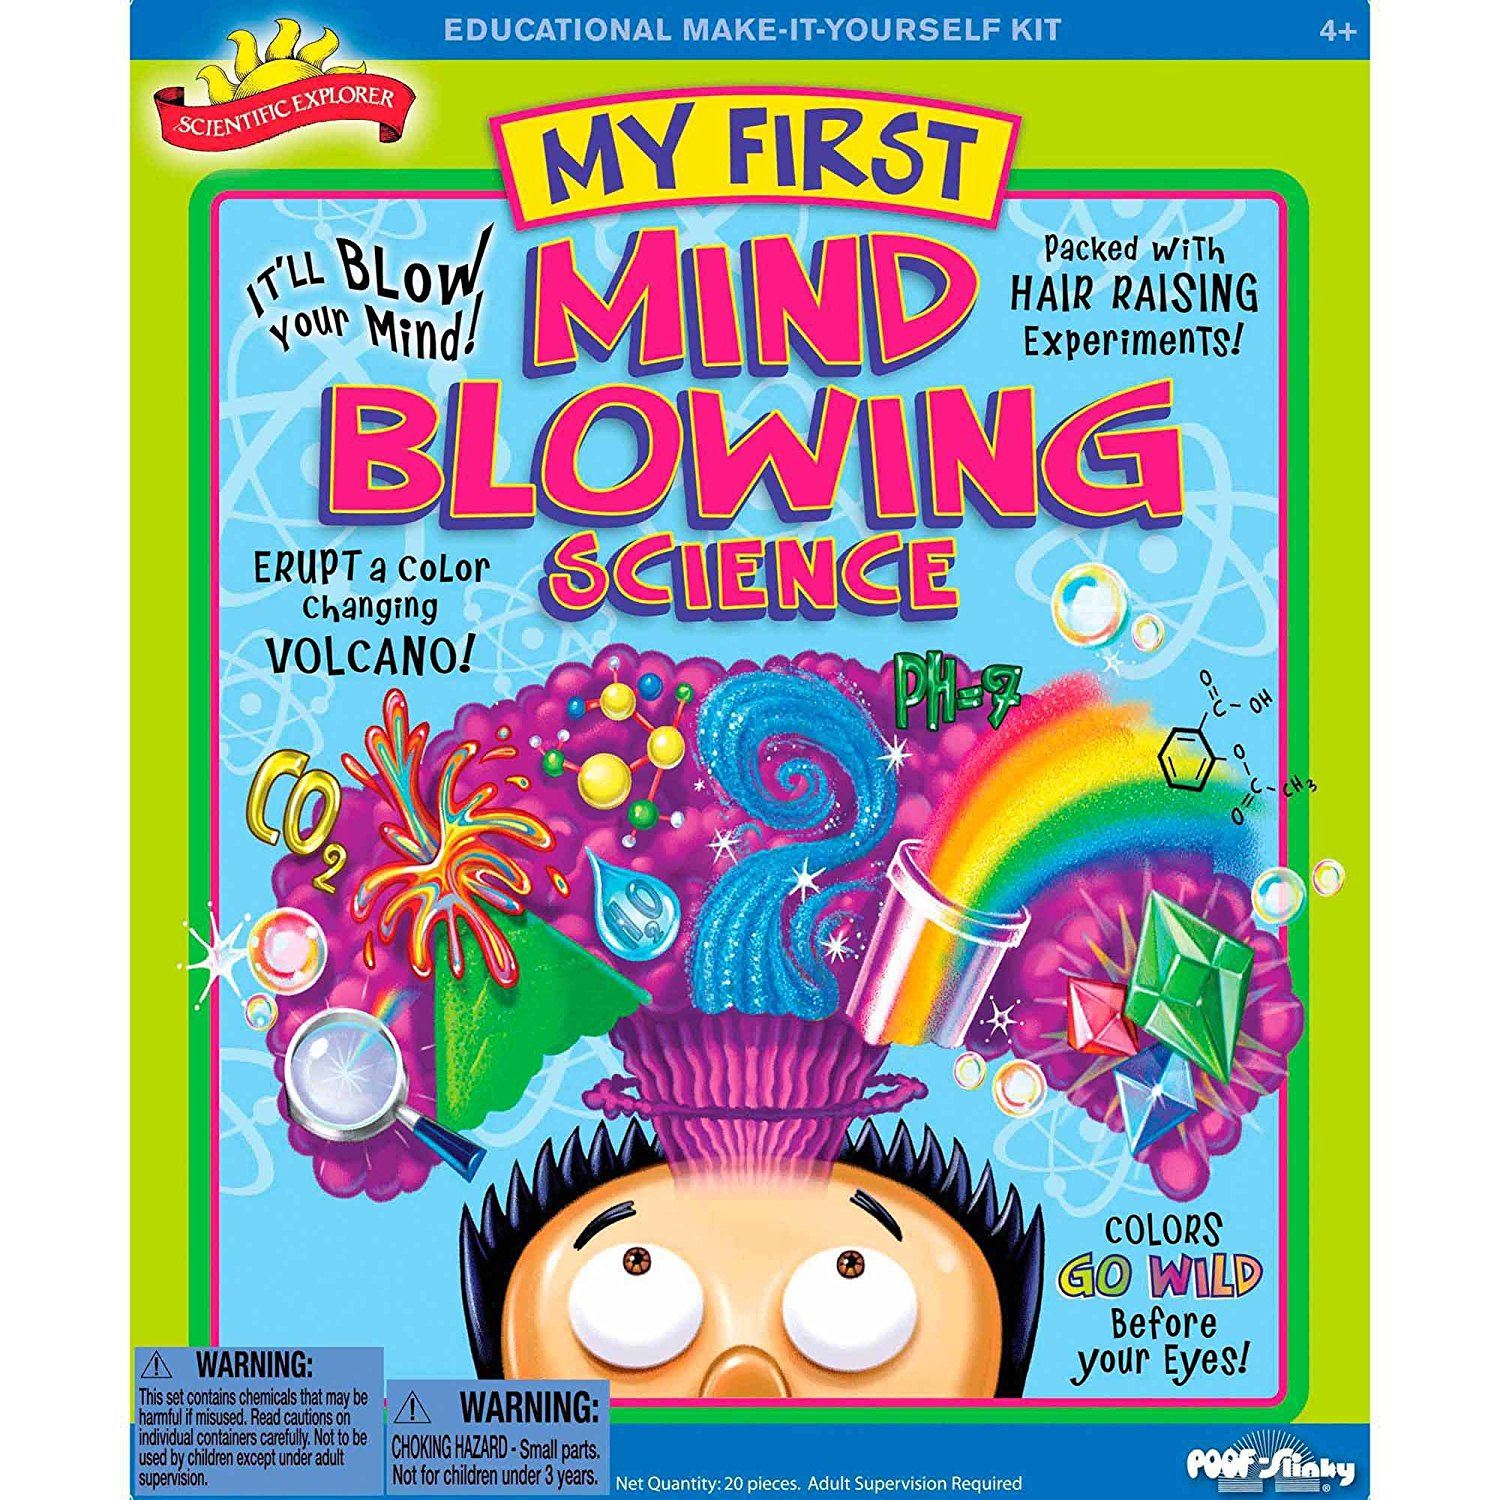 My First Mind Blowing Science Kit by, Scientific Explorer My First Mind Blowing Science Kit by Scientific... by